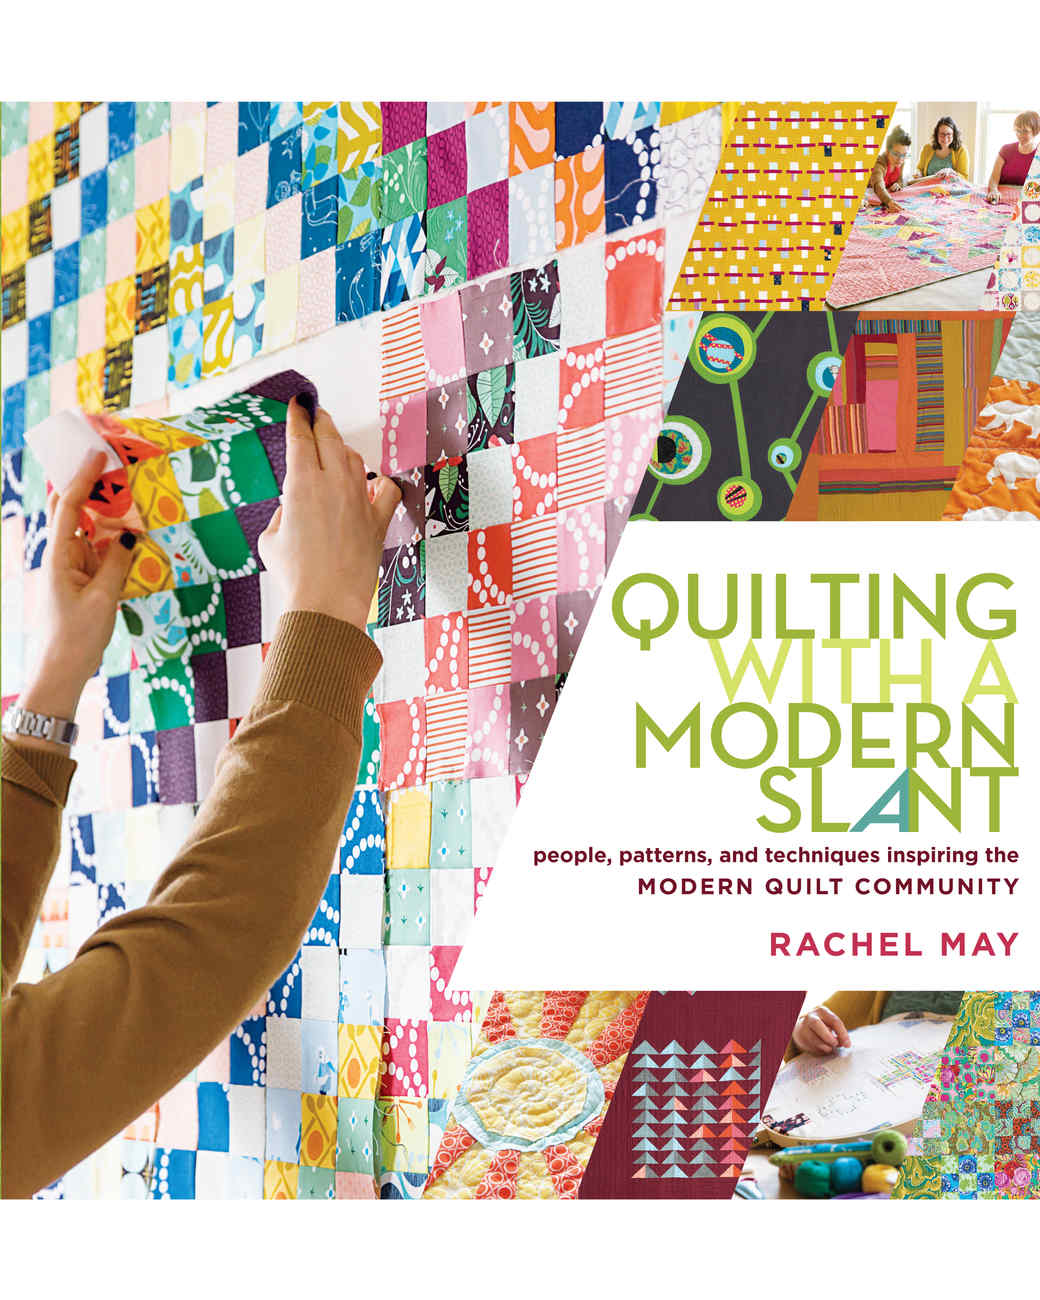 quilting-modern-slant-book-cover-0314.jpg